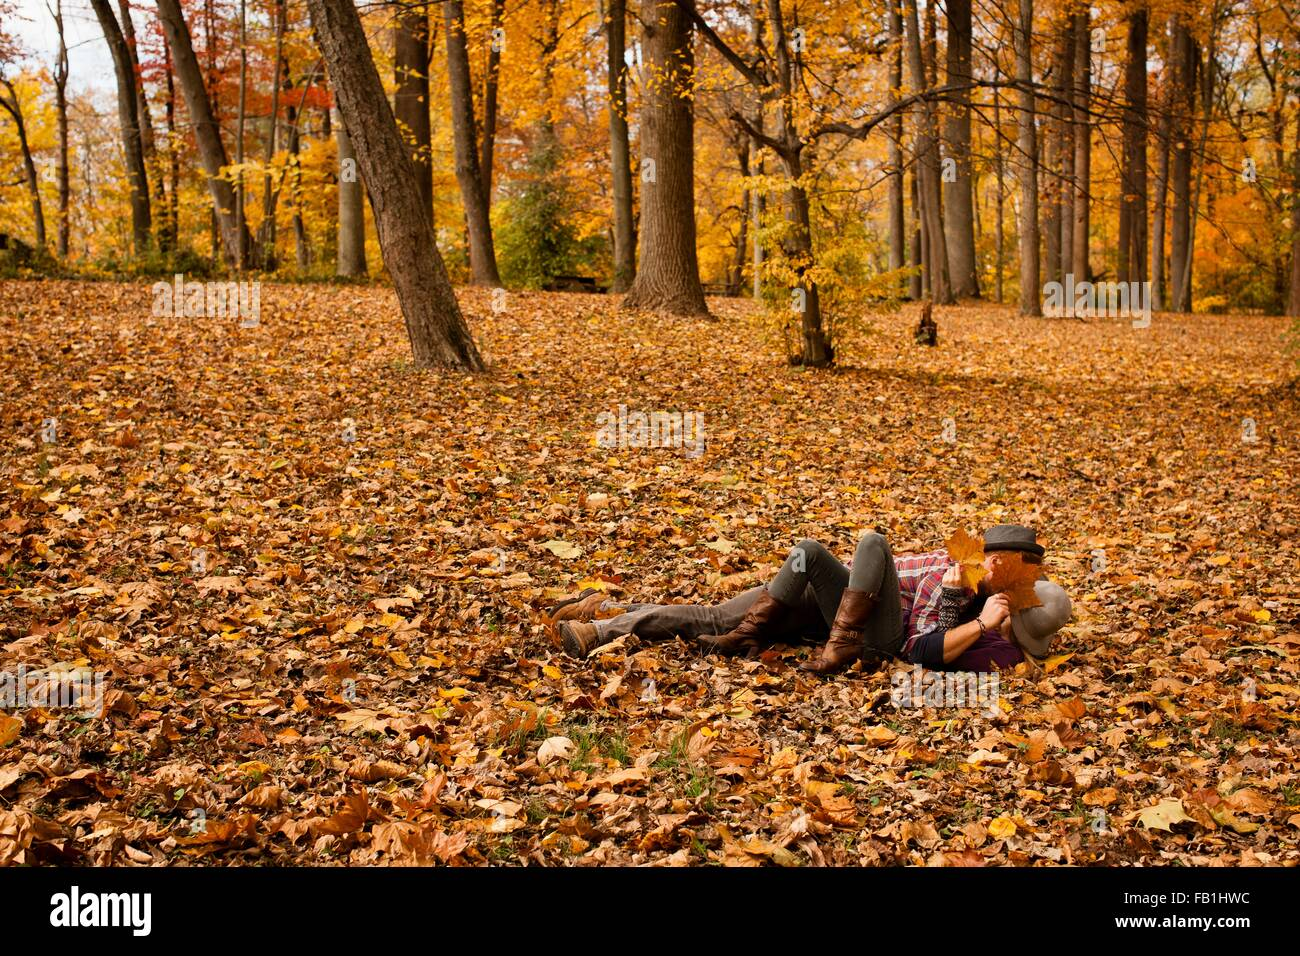 Young couple play fighting in autumn forest - Stock Image